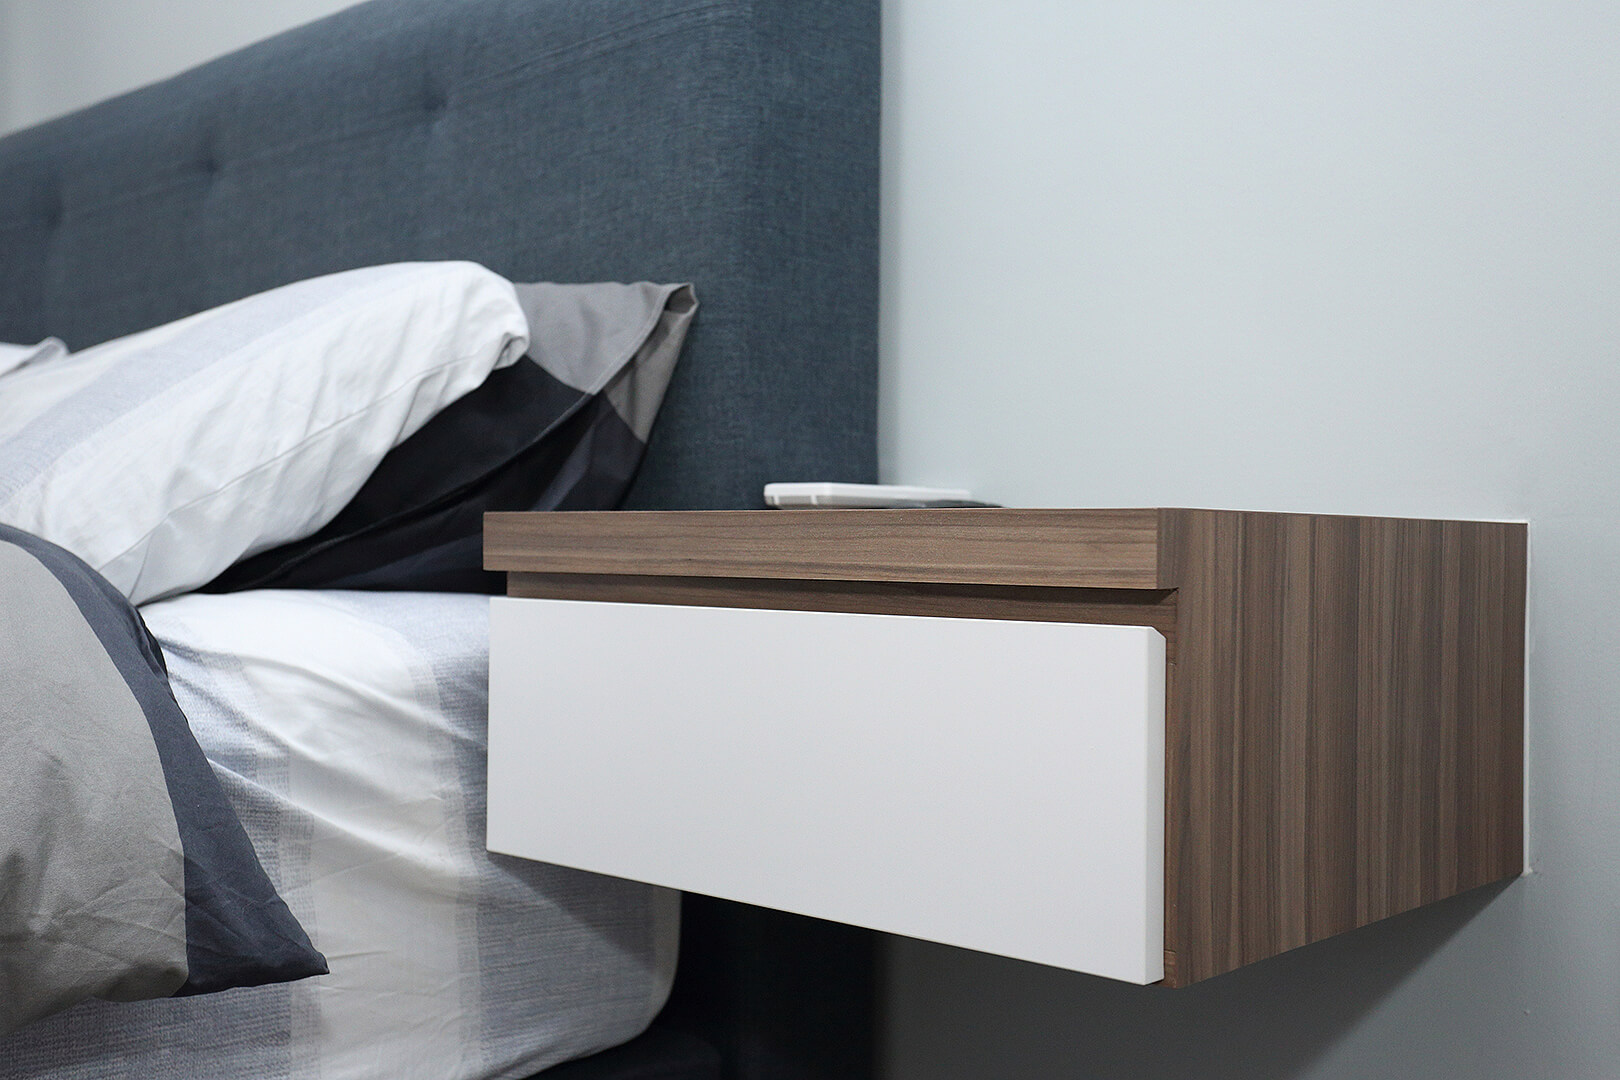 Minimalist Home Interior Design Singapore Bedroom Drawer Wooden White Cover